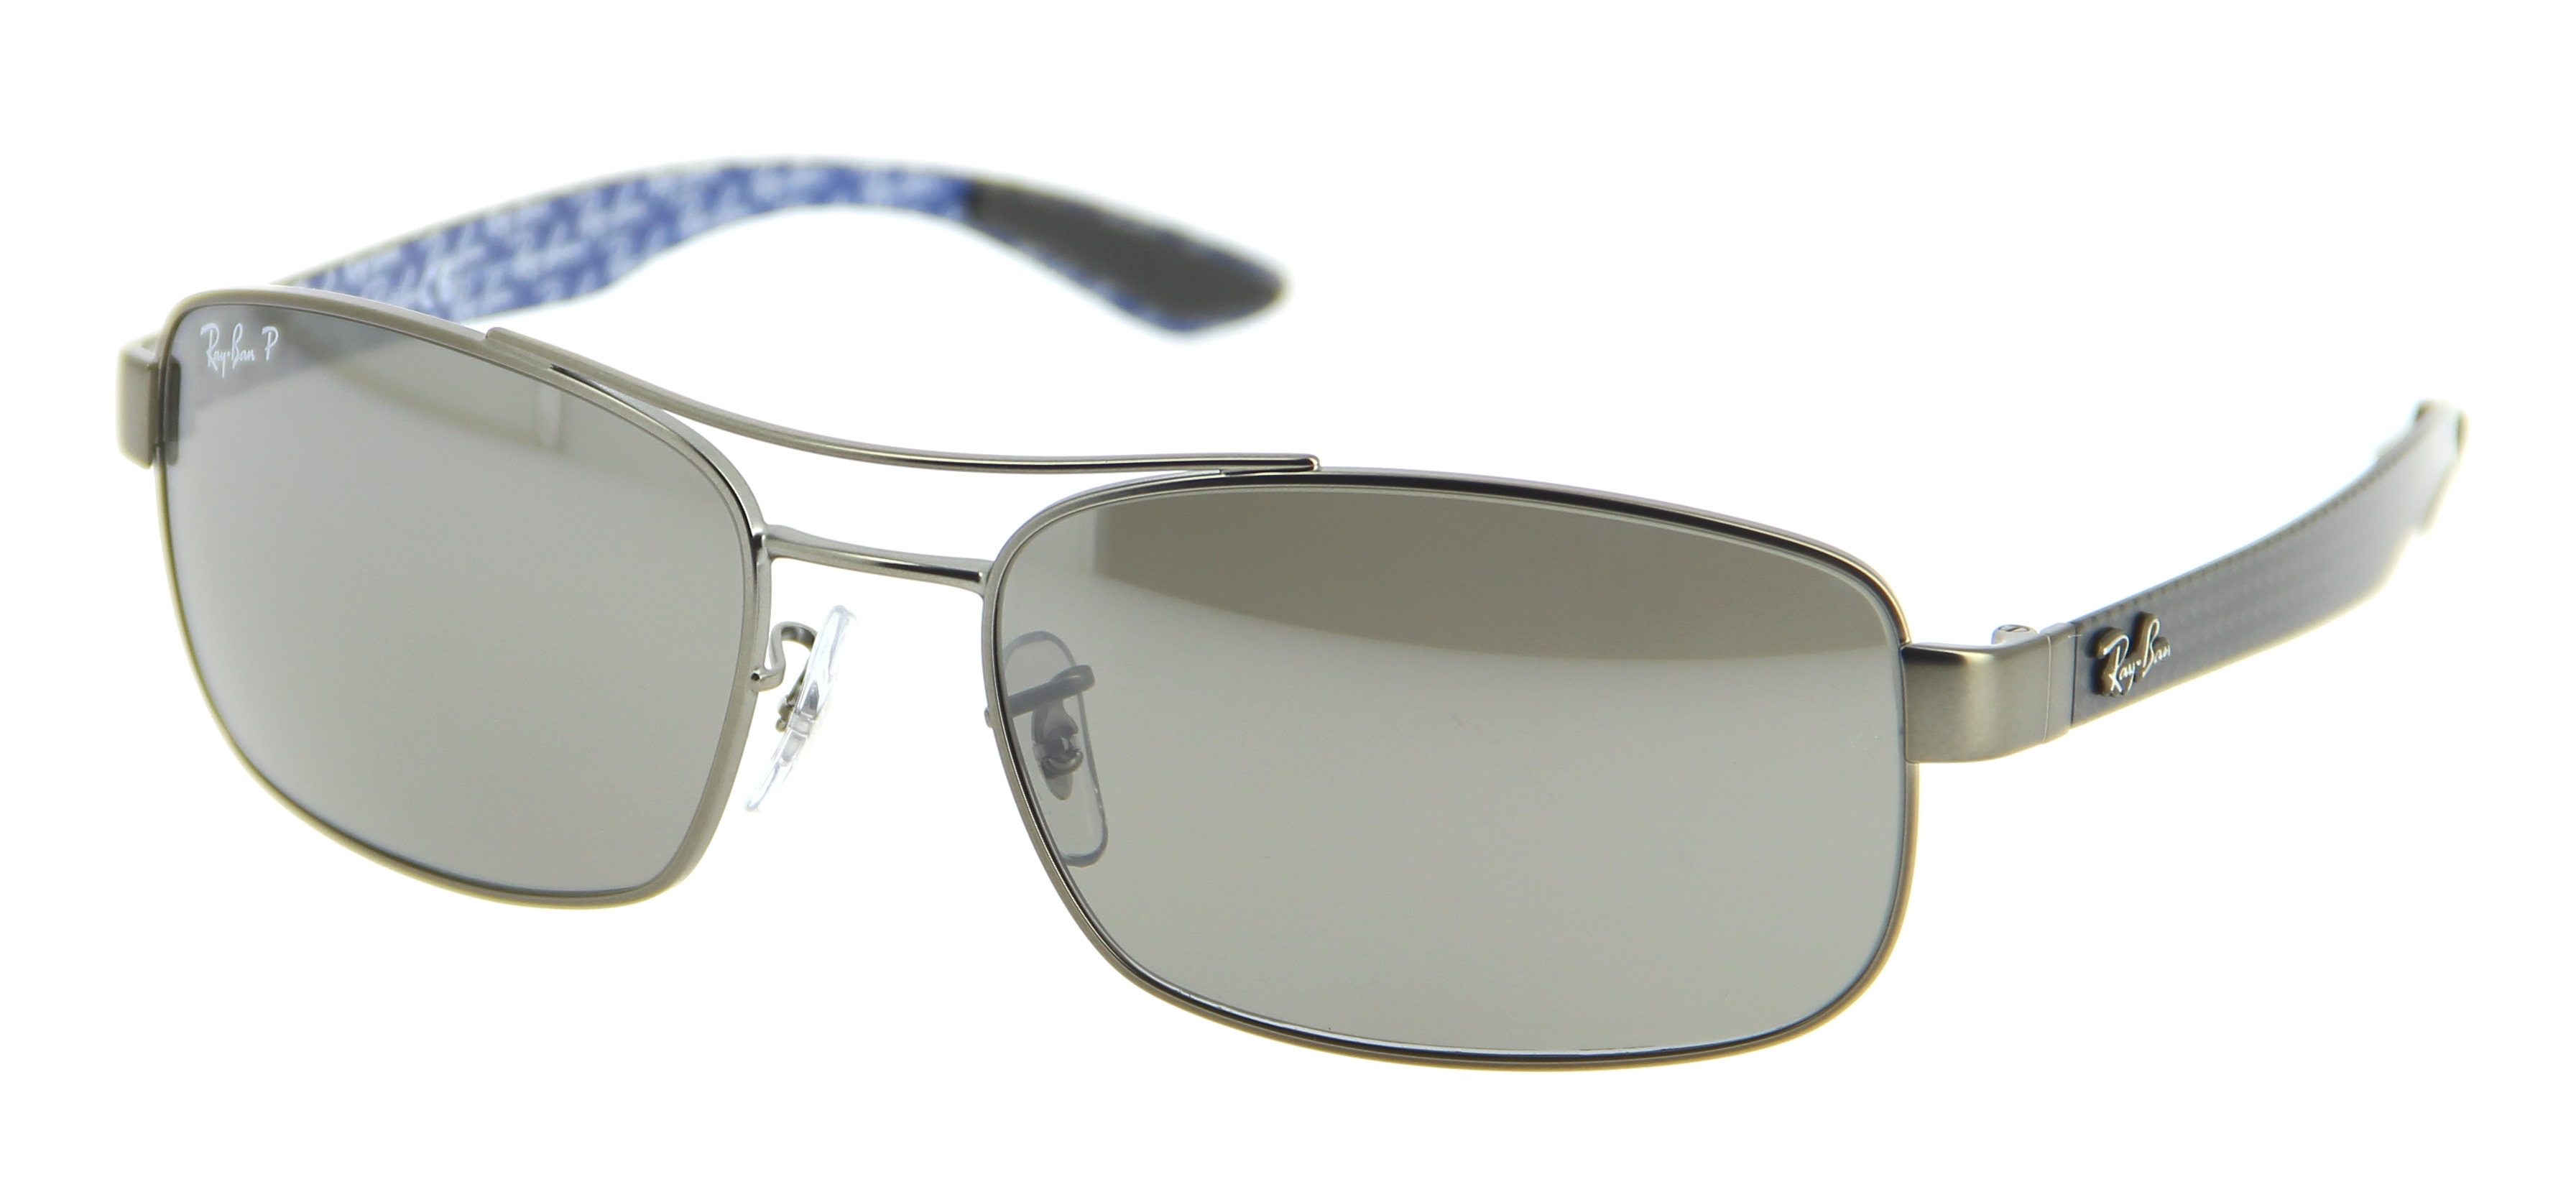 Lunettes Ray Ban Optical Center   Louisiana Bucket Brigade a4a8d34b9888